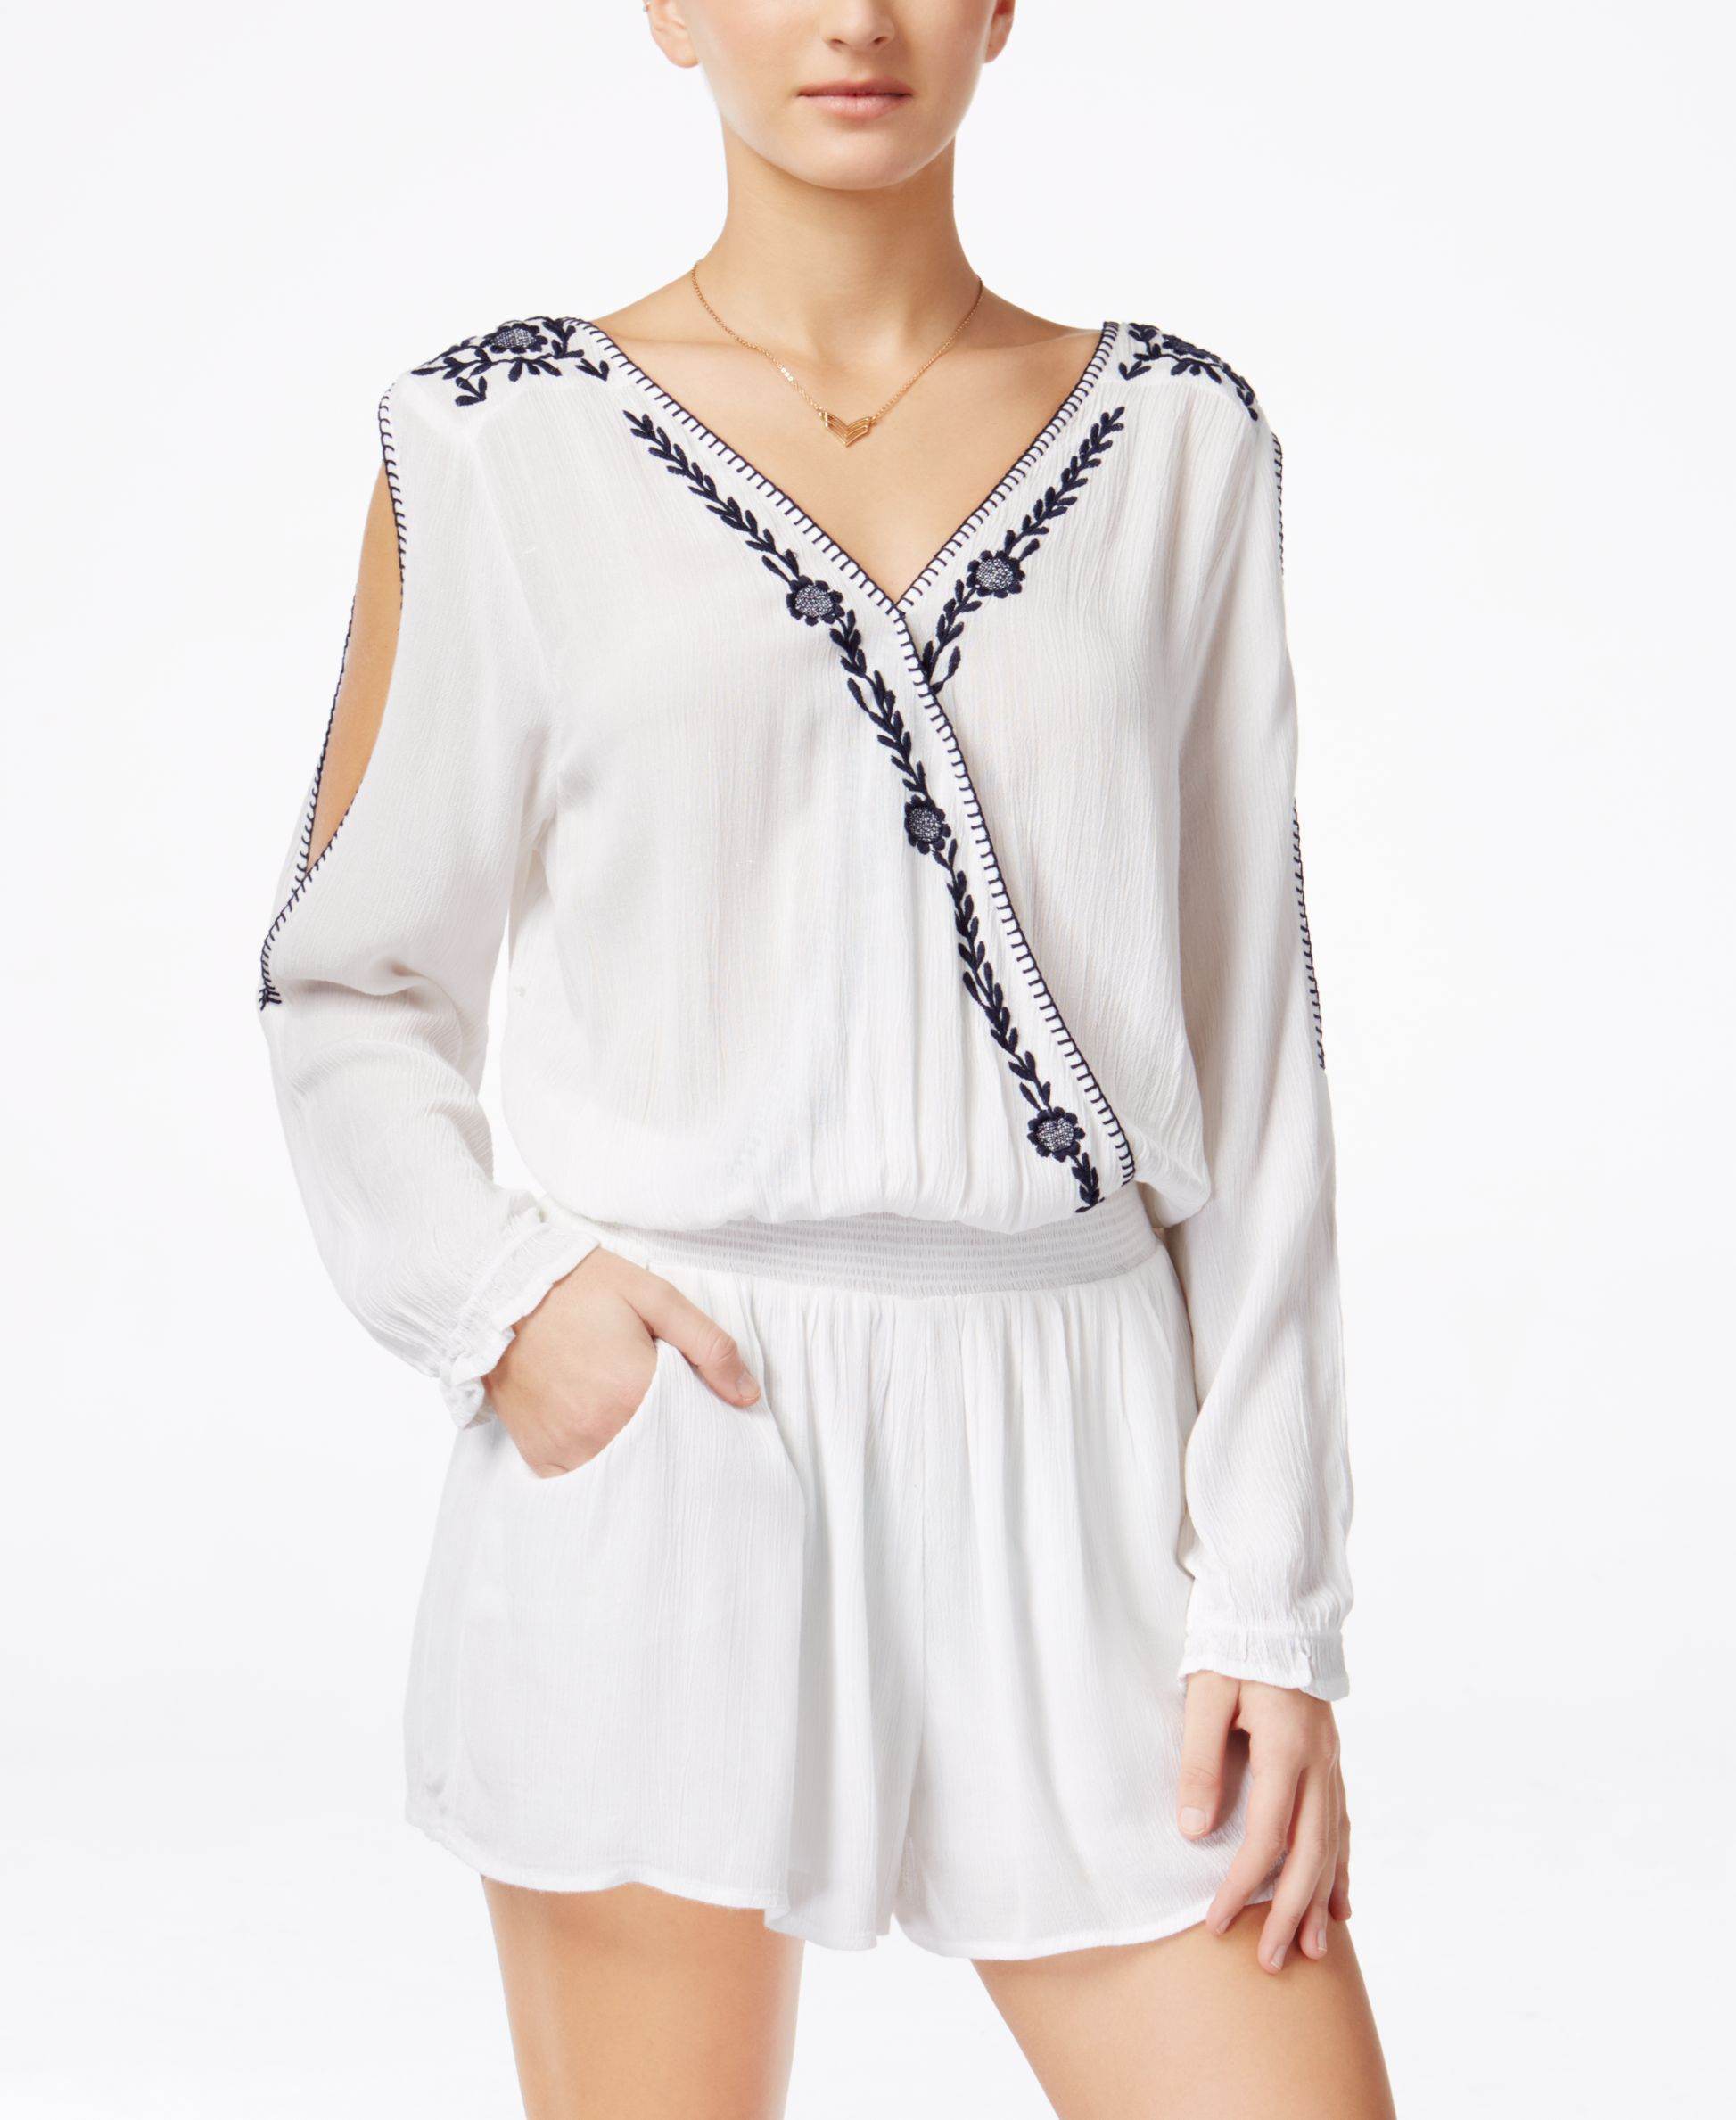 6c3b83fe46e American Rag Juniors' Long-Sleeve Embroidered Romper, Only at Macy's ...